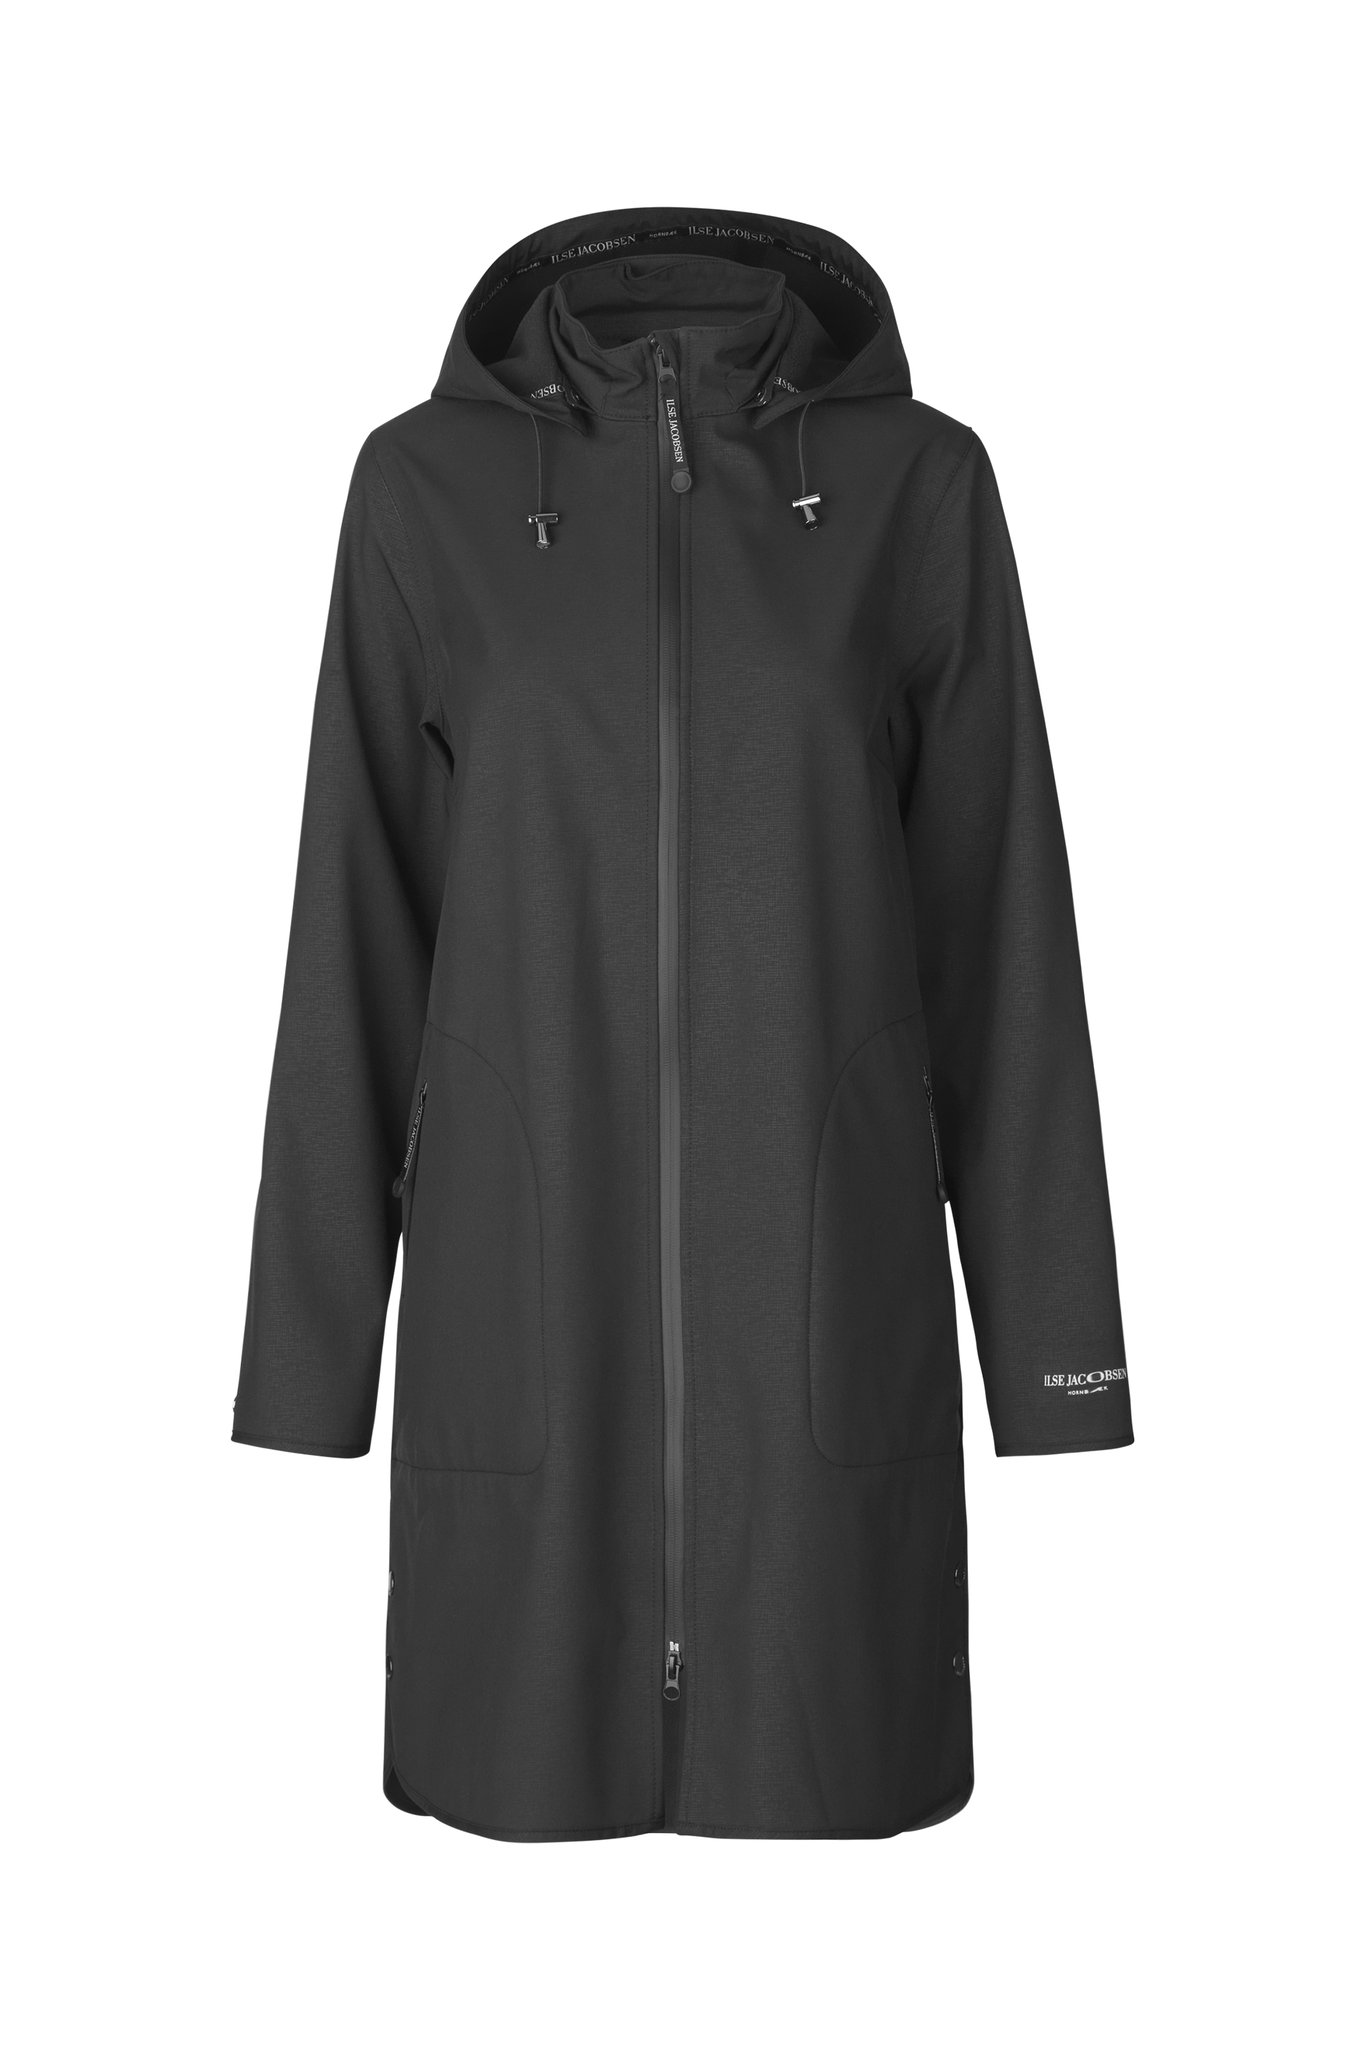 Ilse Jacobsen Rain coat 128  Black